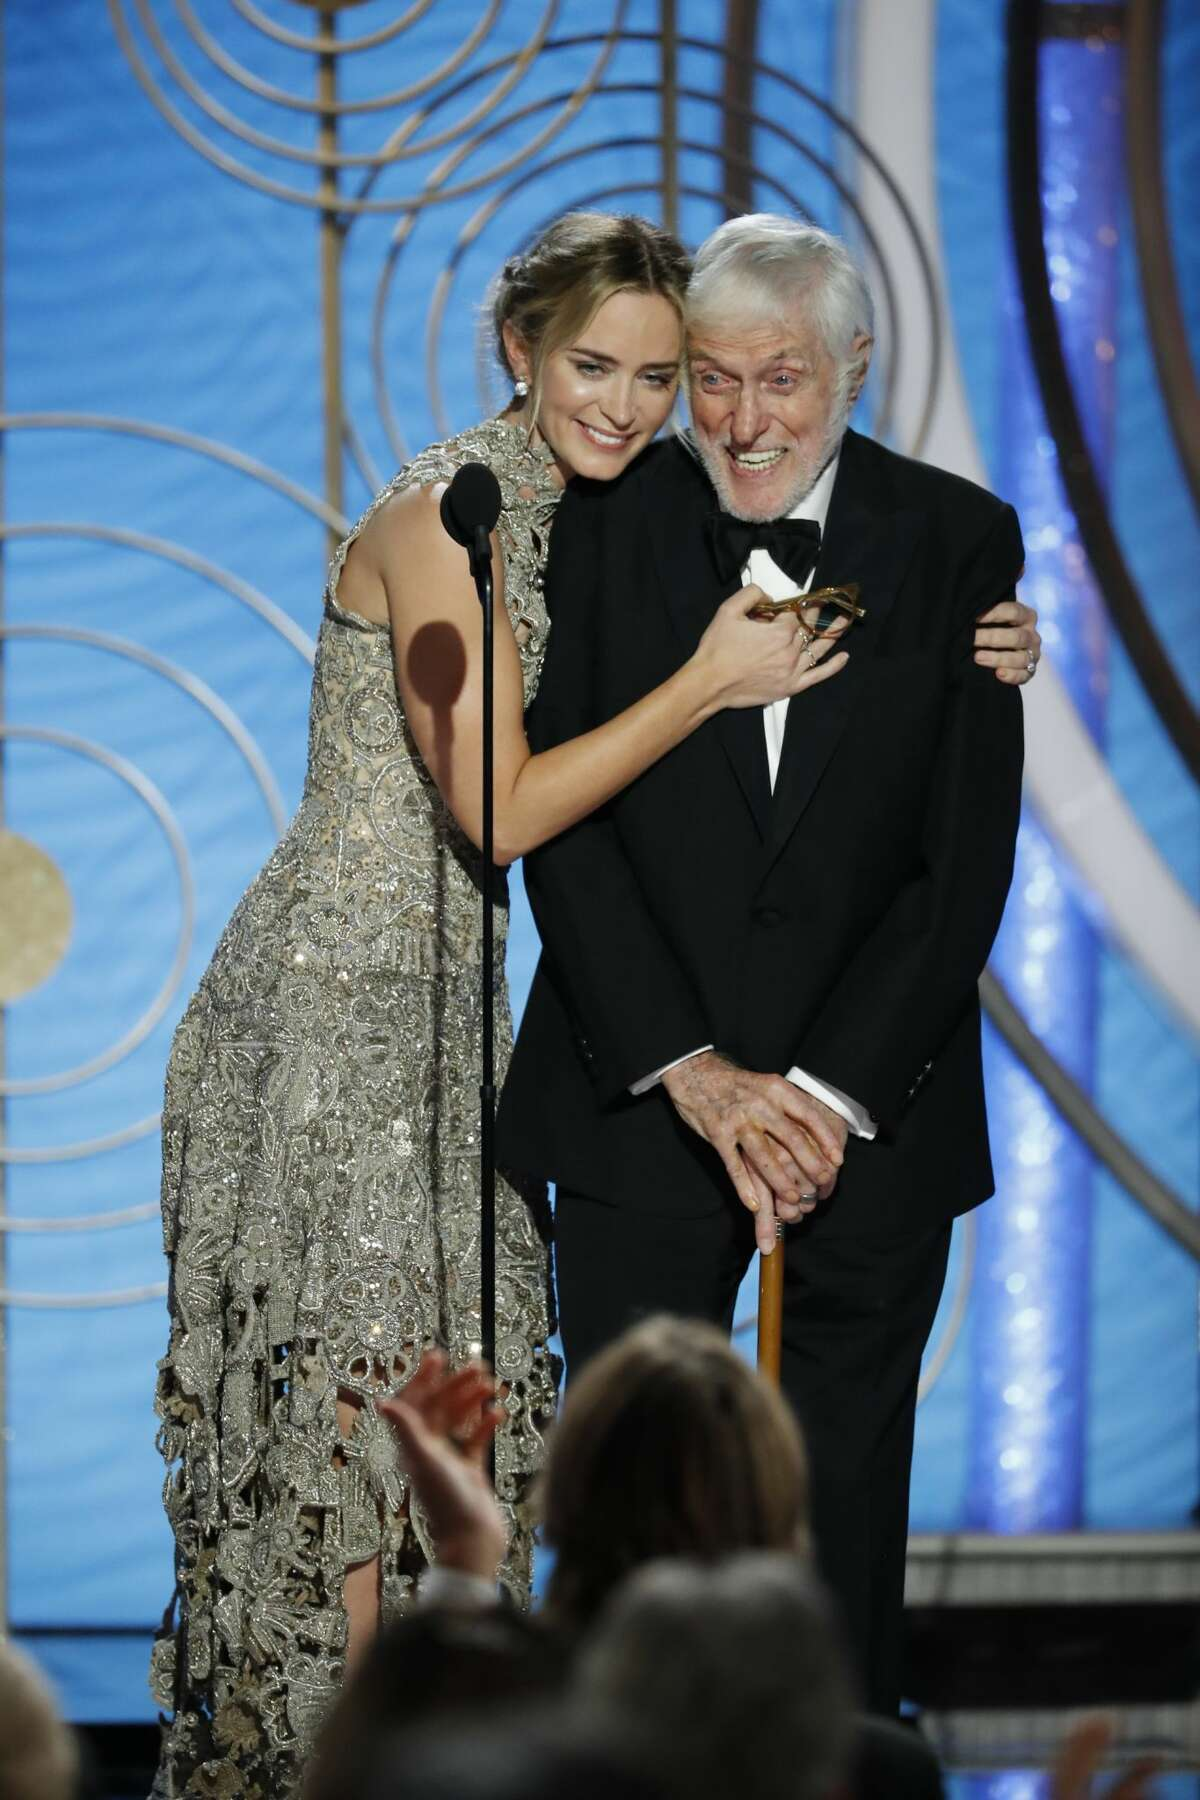 Emily Blunt and Dick Van Dyke at the 76th Annual Golden Globe Awards held at the Beverly Hilton Hotel on January 6, 2019.